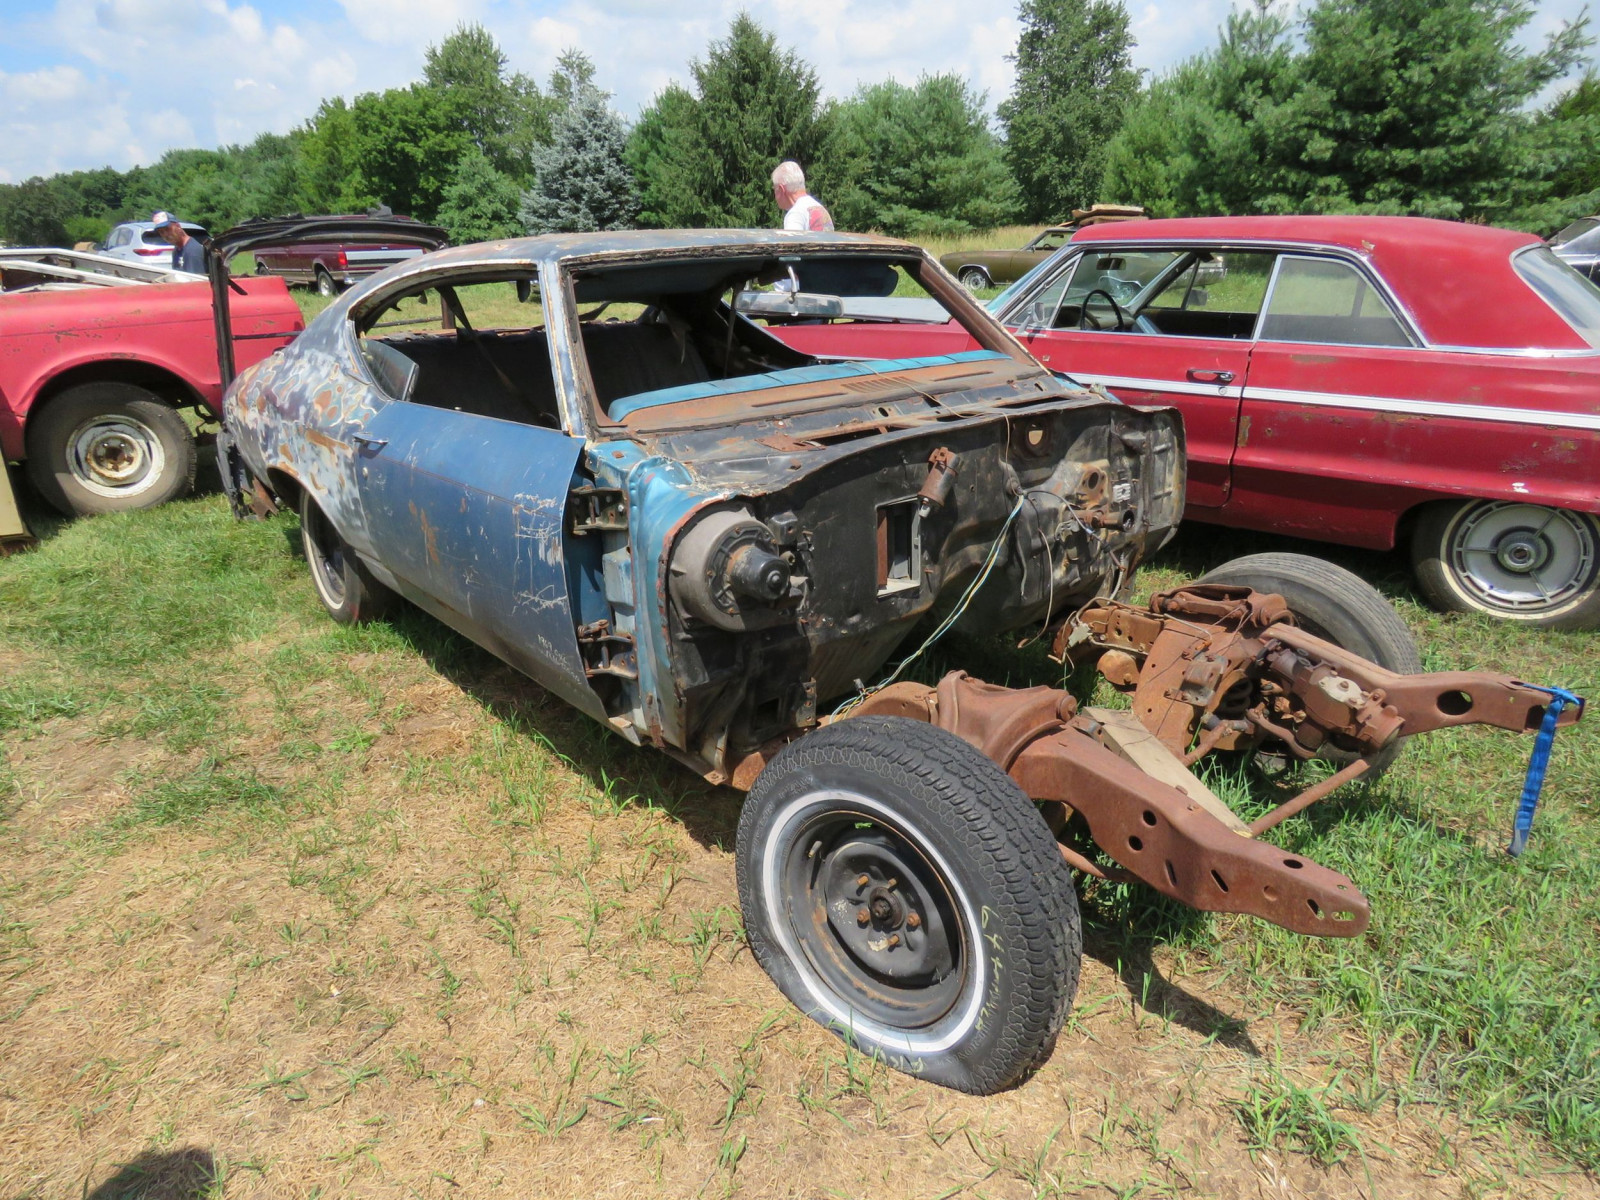 1969 Chevrolet Chevelle Rolling Body for Project or Parts - Image 3